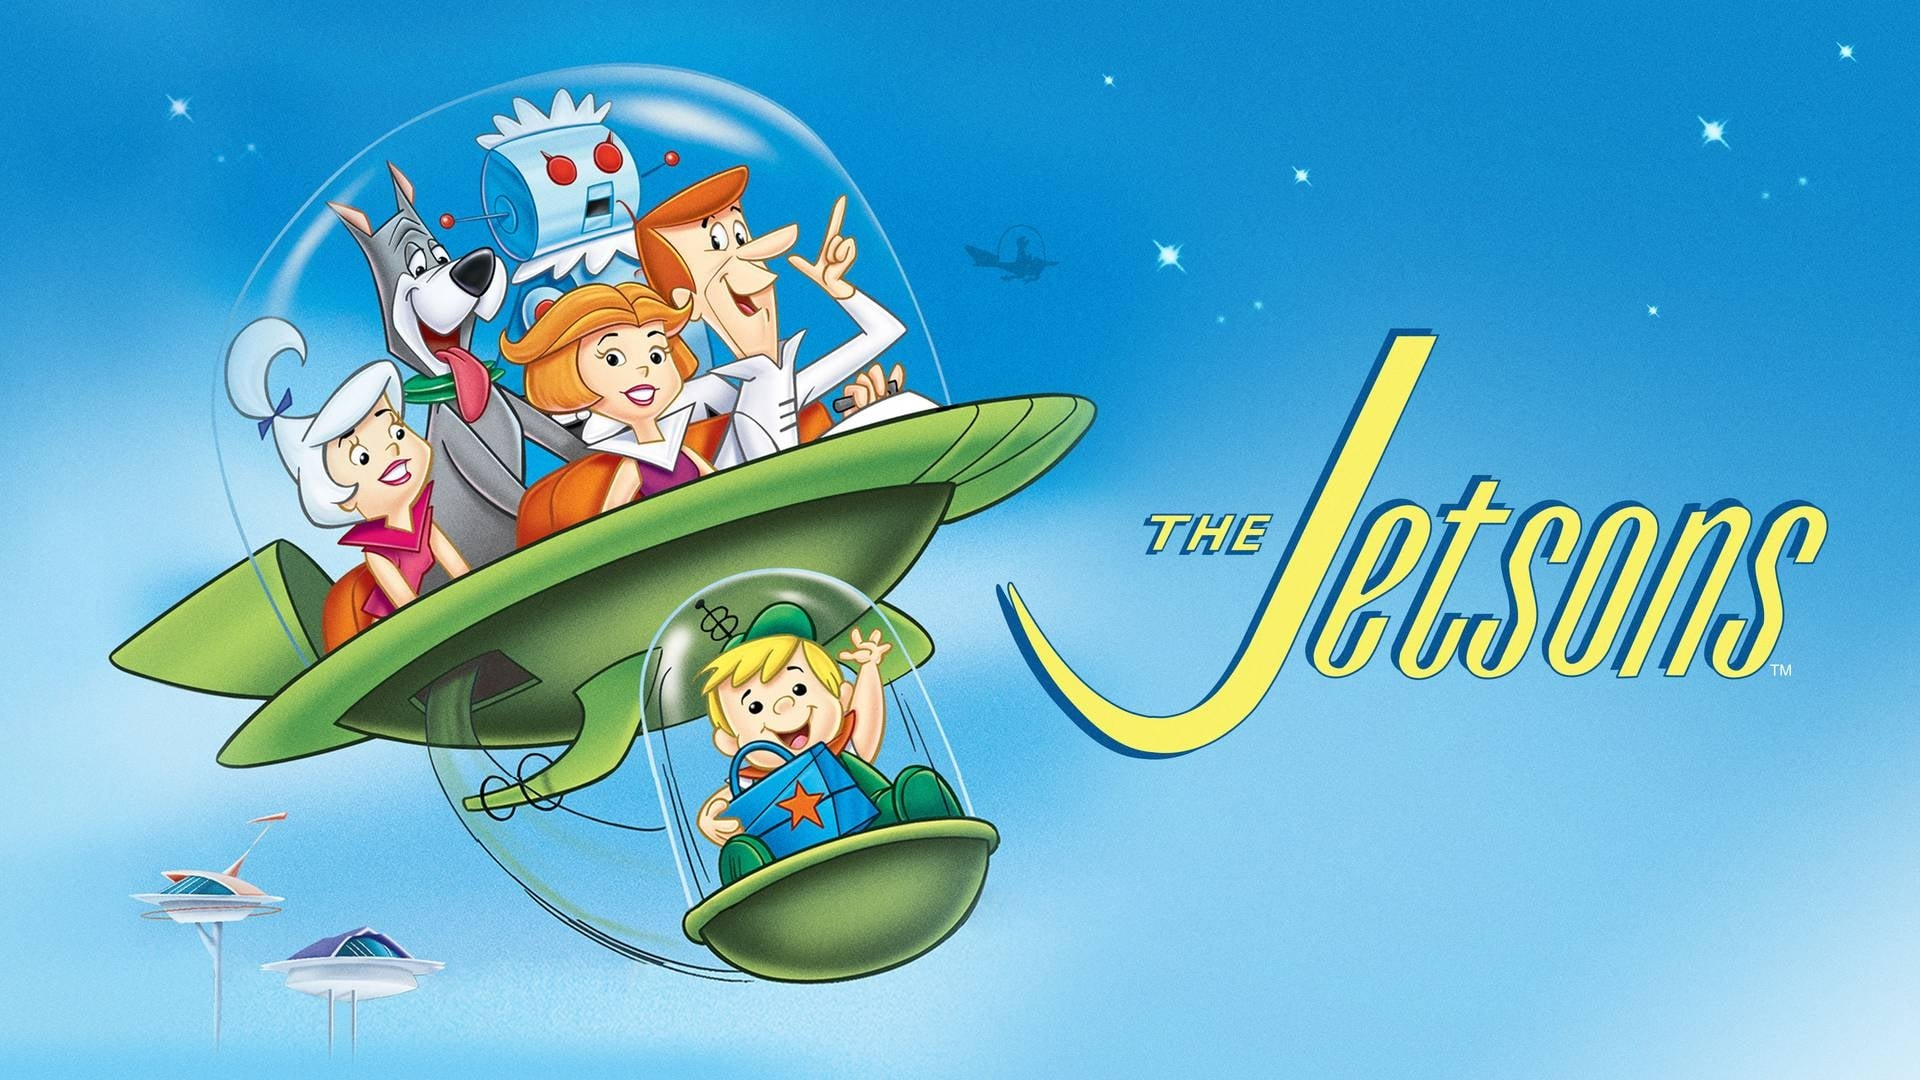 The Jetsons - Season 2 Episode 1